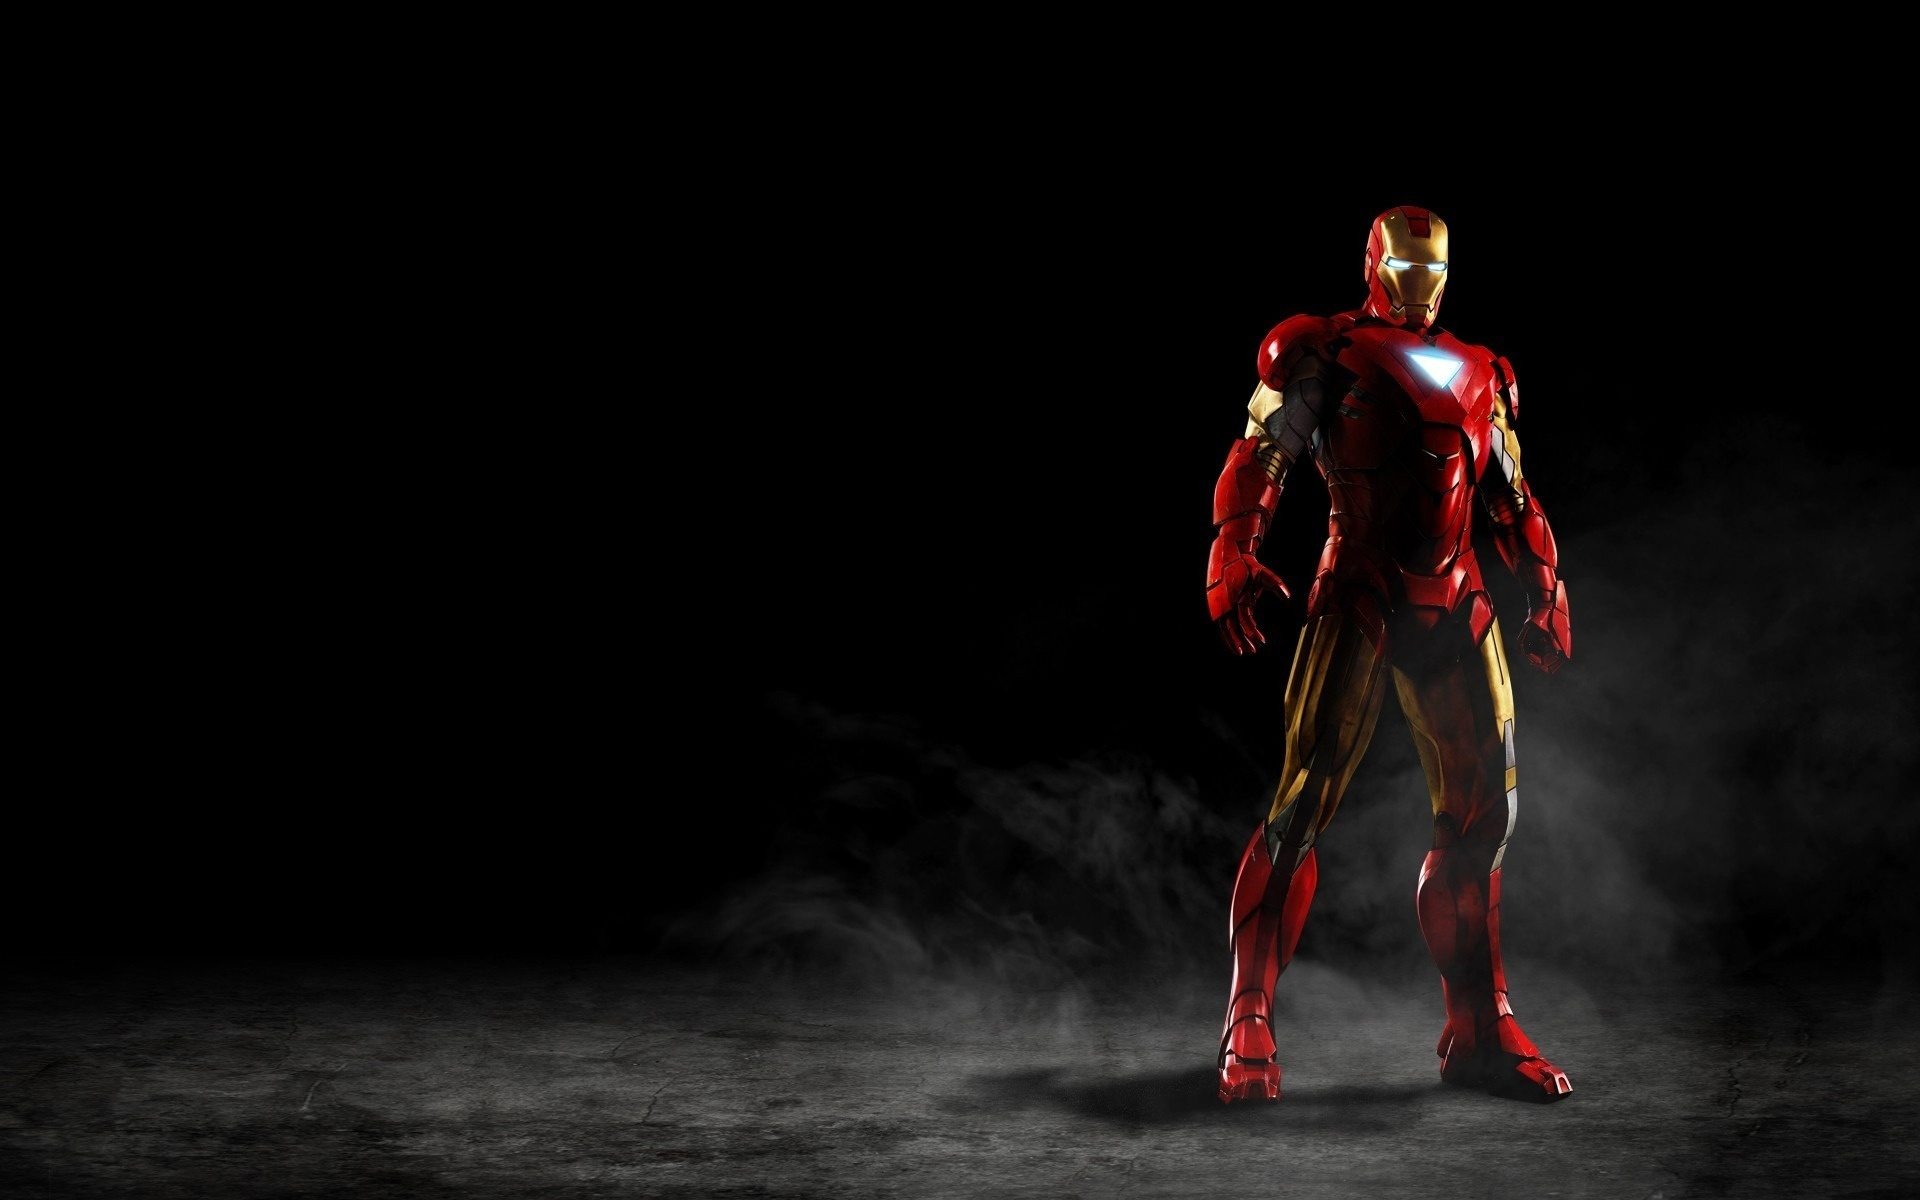 iron man full hd wallpaper and background image | 1920x1200 | id:180310